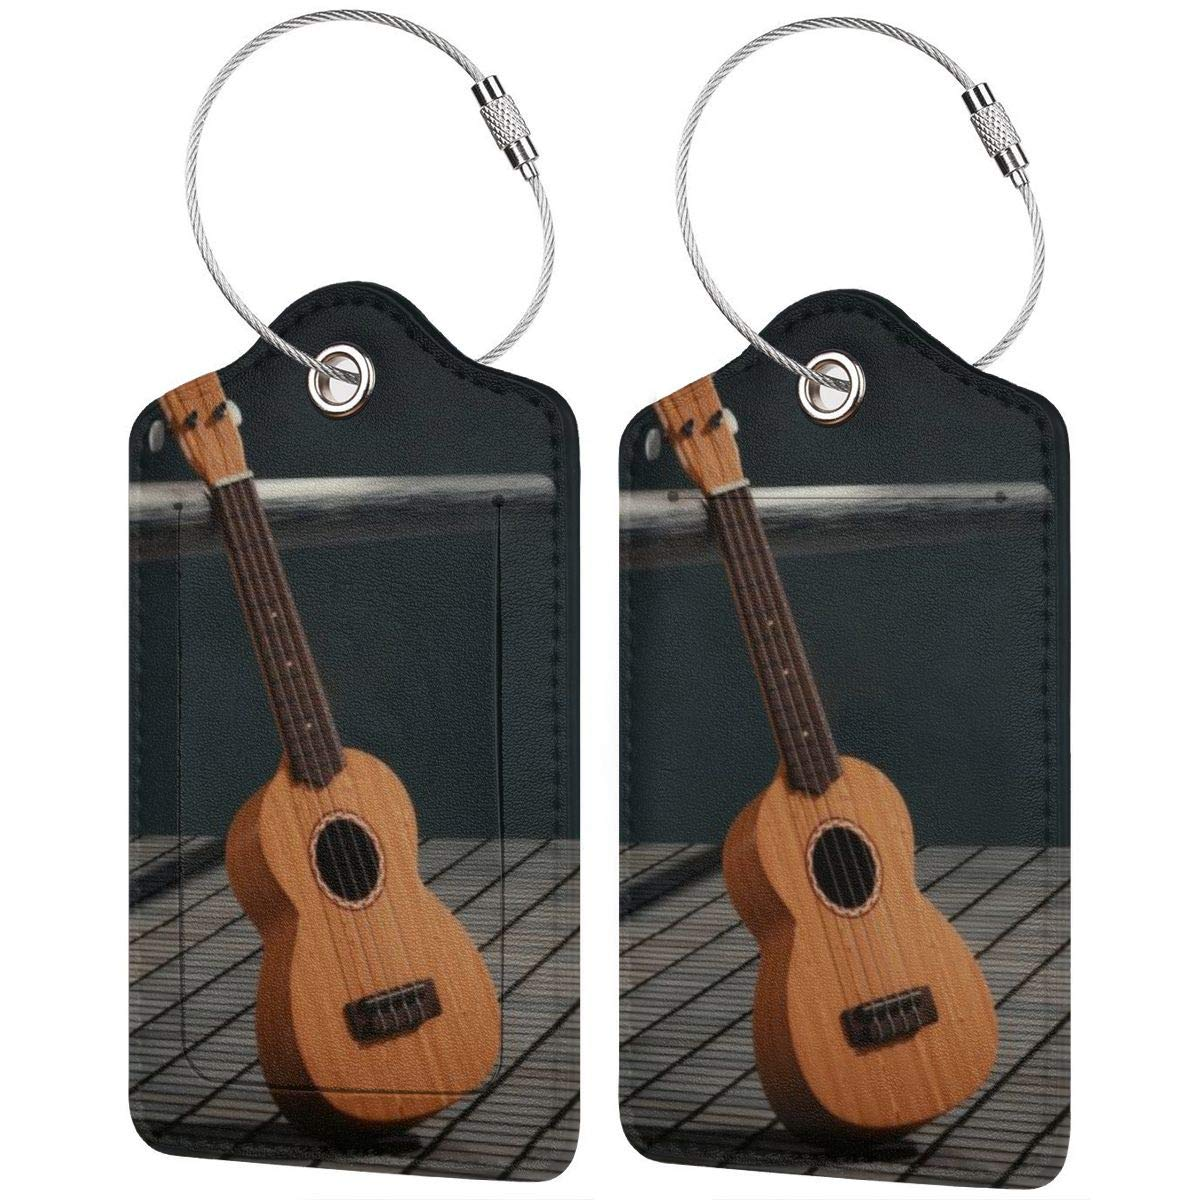 Musical Guitar Luggage Tag Label Travel Bag Label With Privacy Cover Luggage Tag Leather Personalized Suitcase Tag Travel Accessories